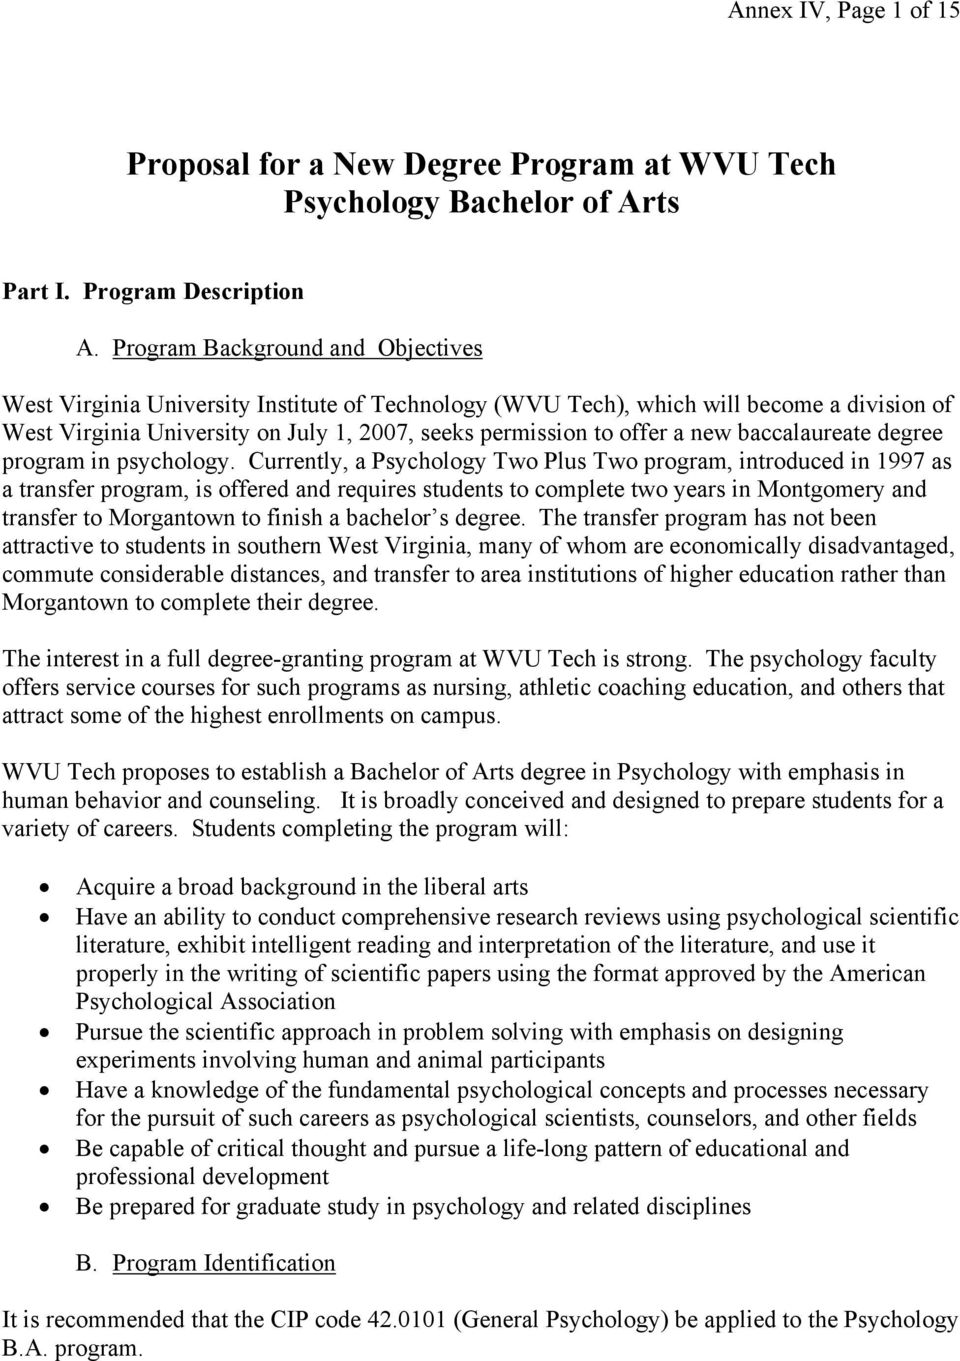 new baccalaureate degree program in psychology.